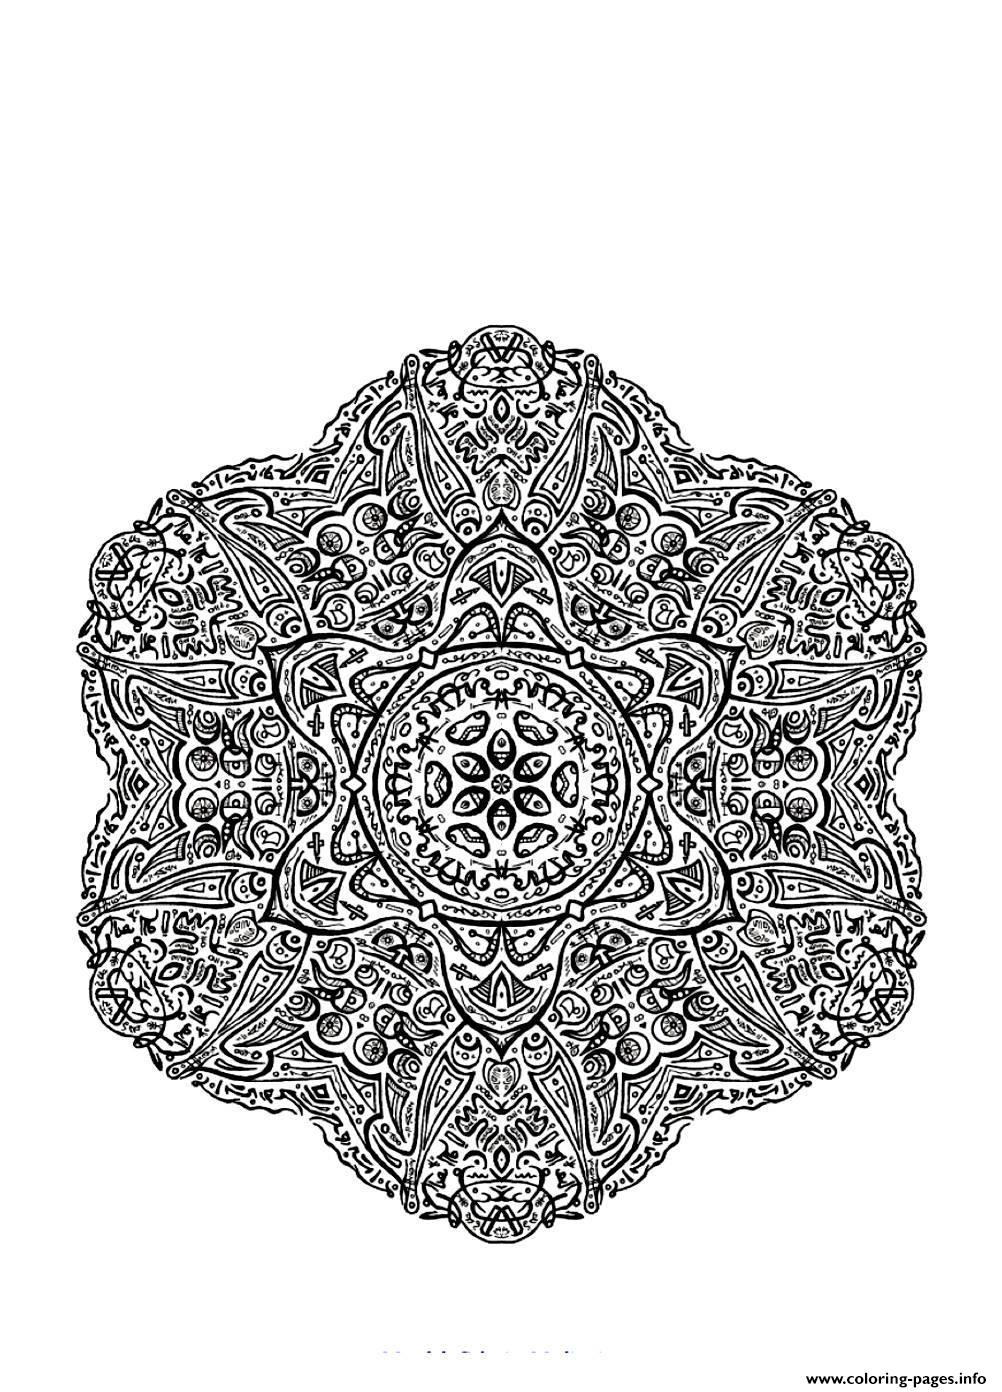 Mandala Difficult 4  coloring pages